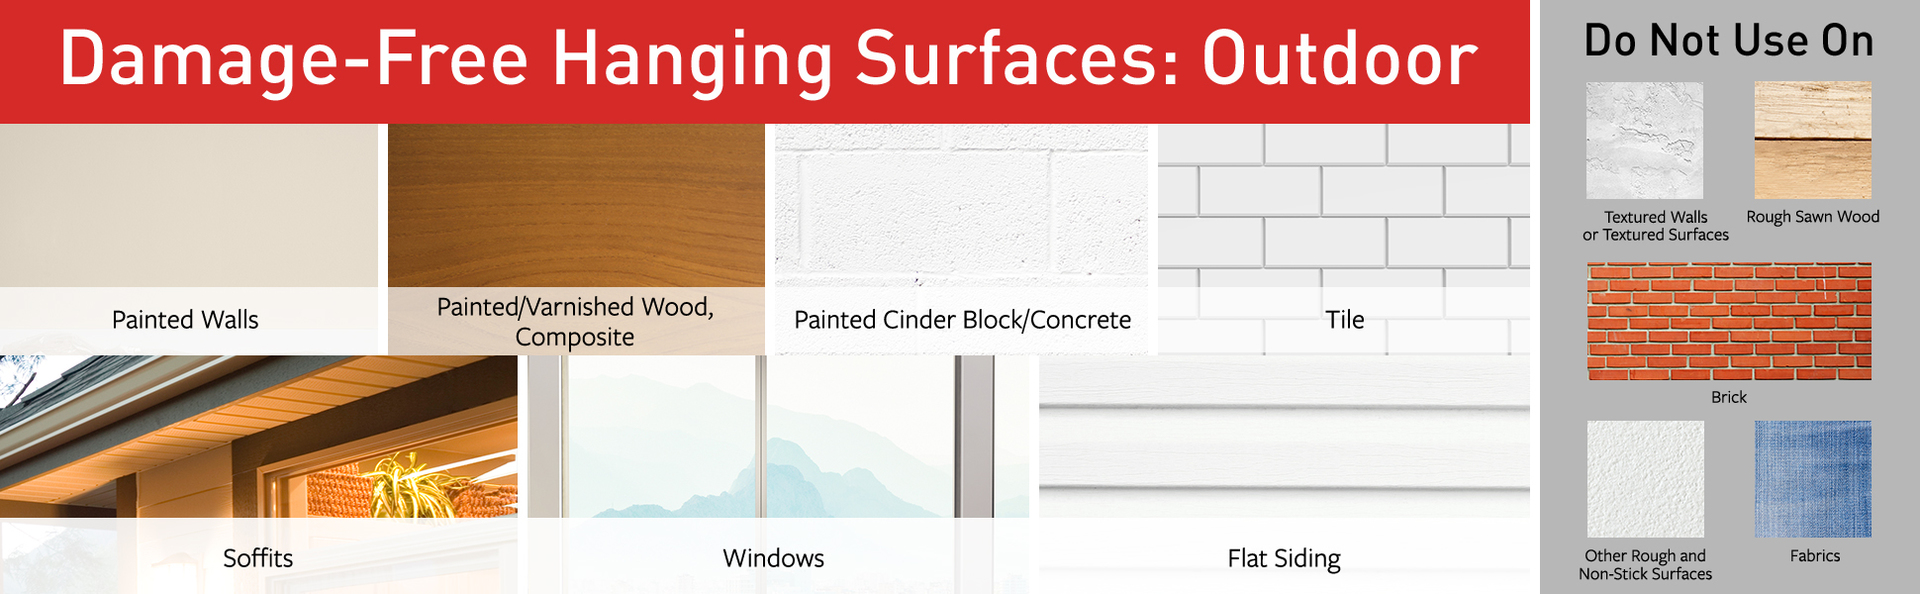 approved surfaces: Painted walls, wood, cinder block; Tile; soffits; windows; flat siding